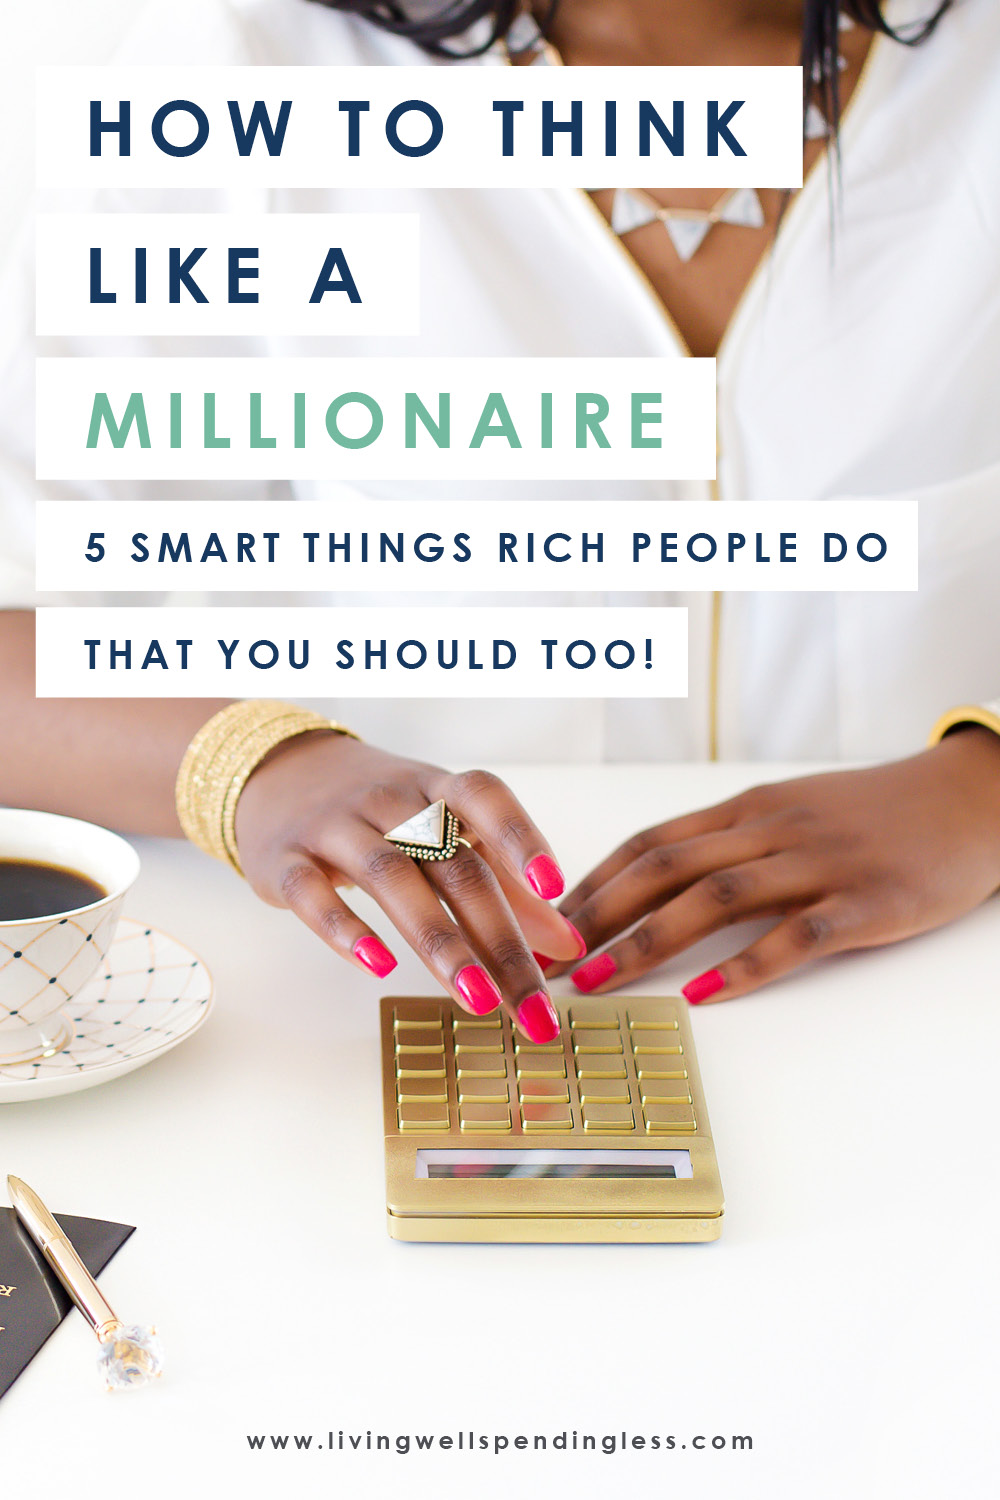 Ever wondered what sets millionaires apart from the rest of us? Surprisingly, it's not fancy cars, private jets, or big houses, but often simply the way they THINK about money. If you've ever wished you could make it big, don't miss these five smart tips for how to start thinking like a millionaire! #millionaire #milliondollarmindset #moneymindset #mindset